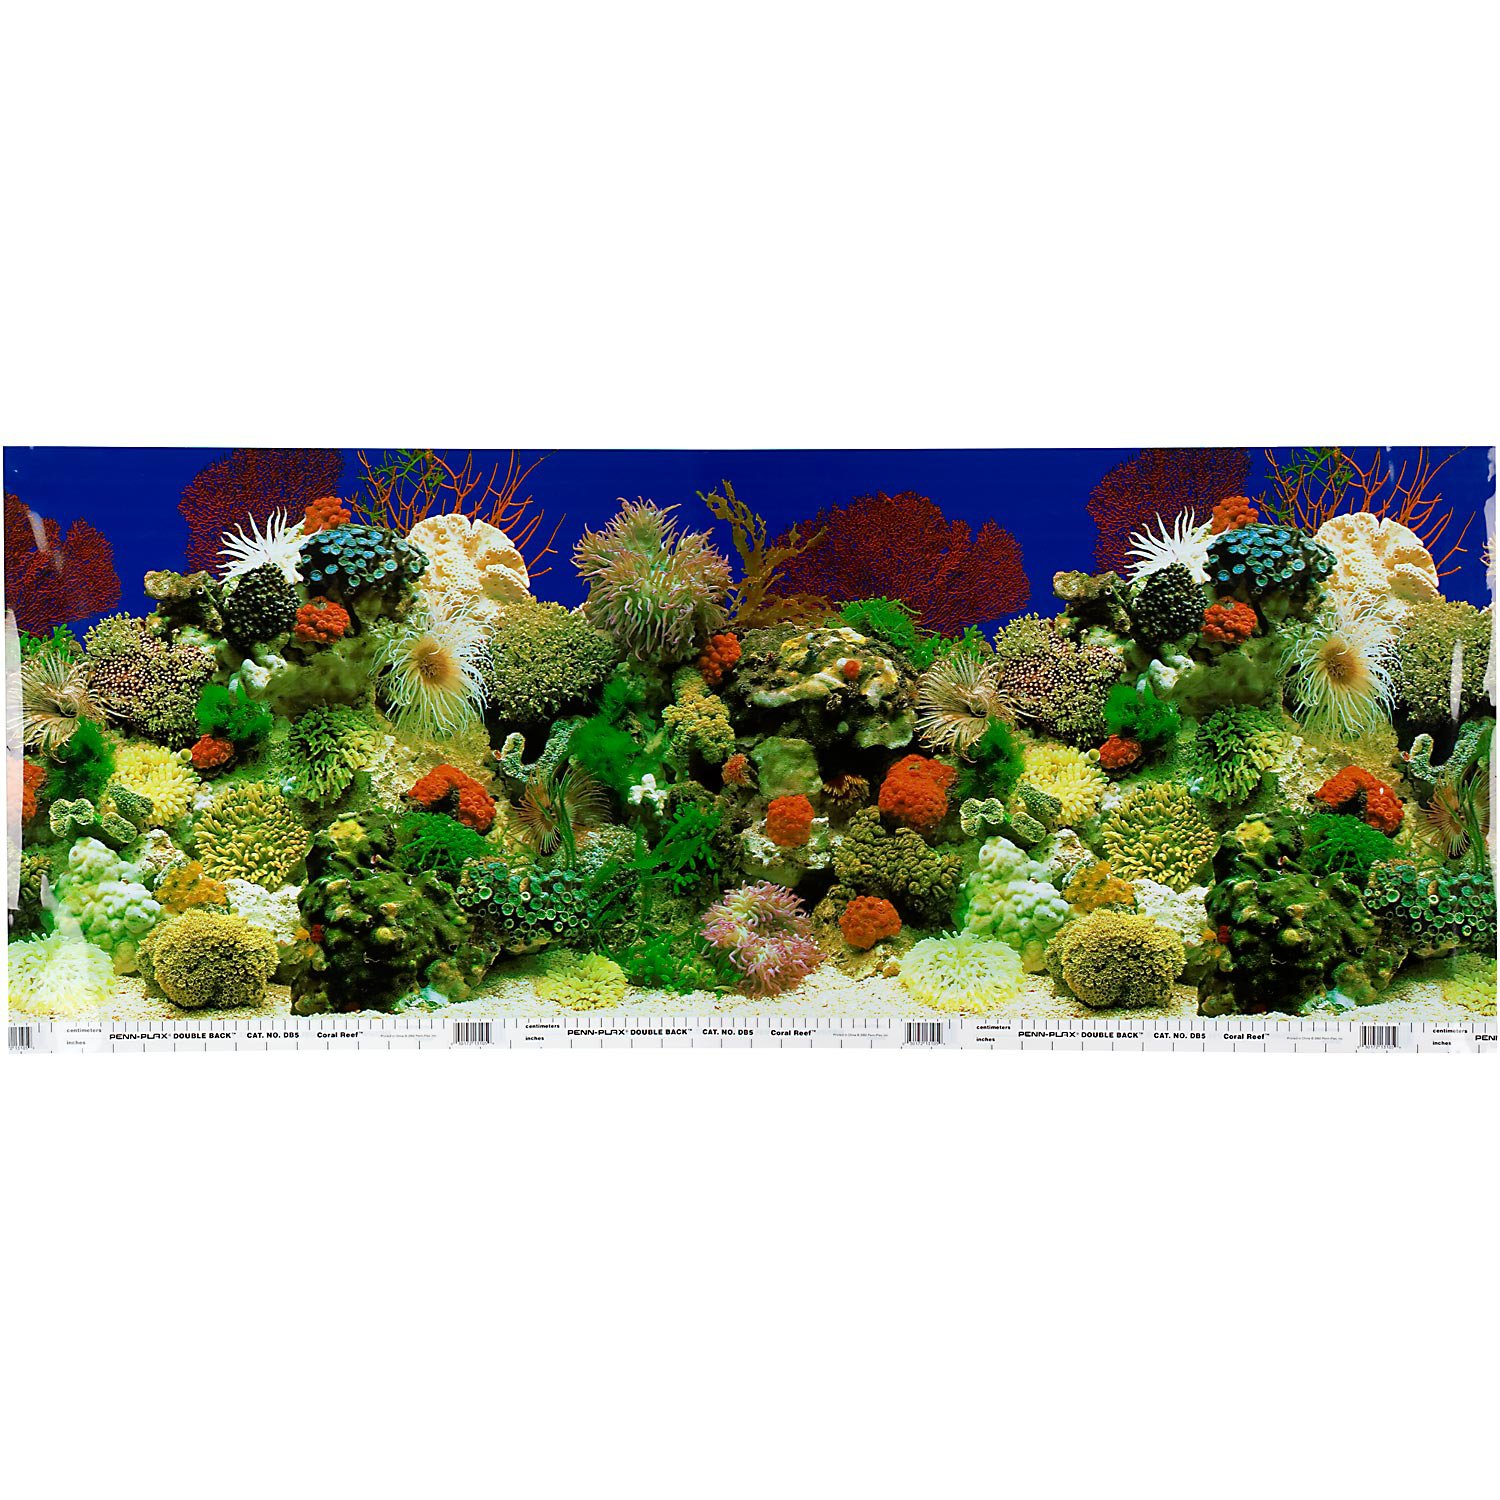 Petco Double Sided Amazon Aquarium Background